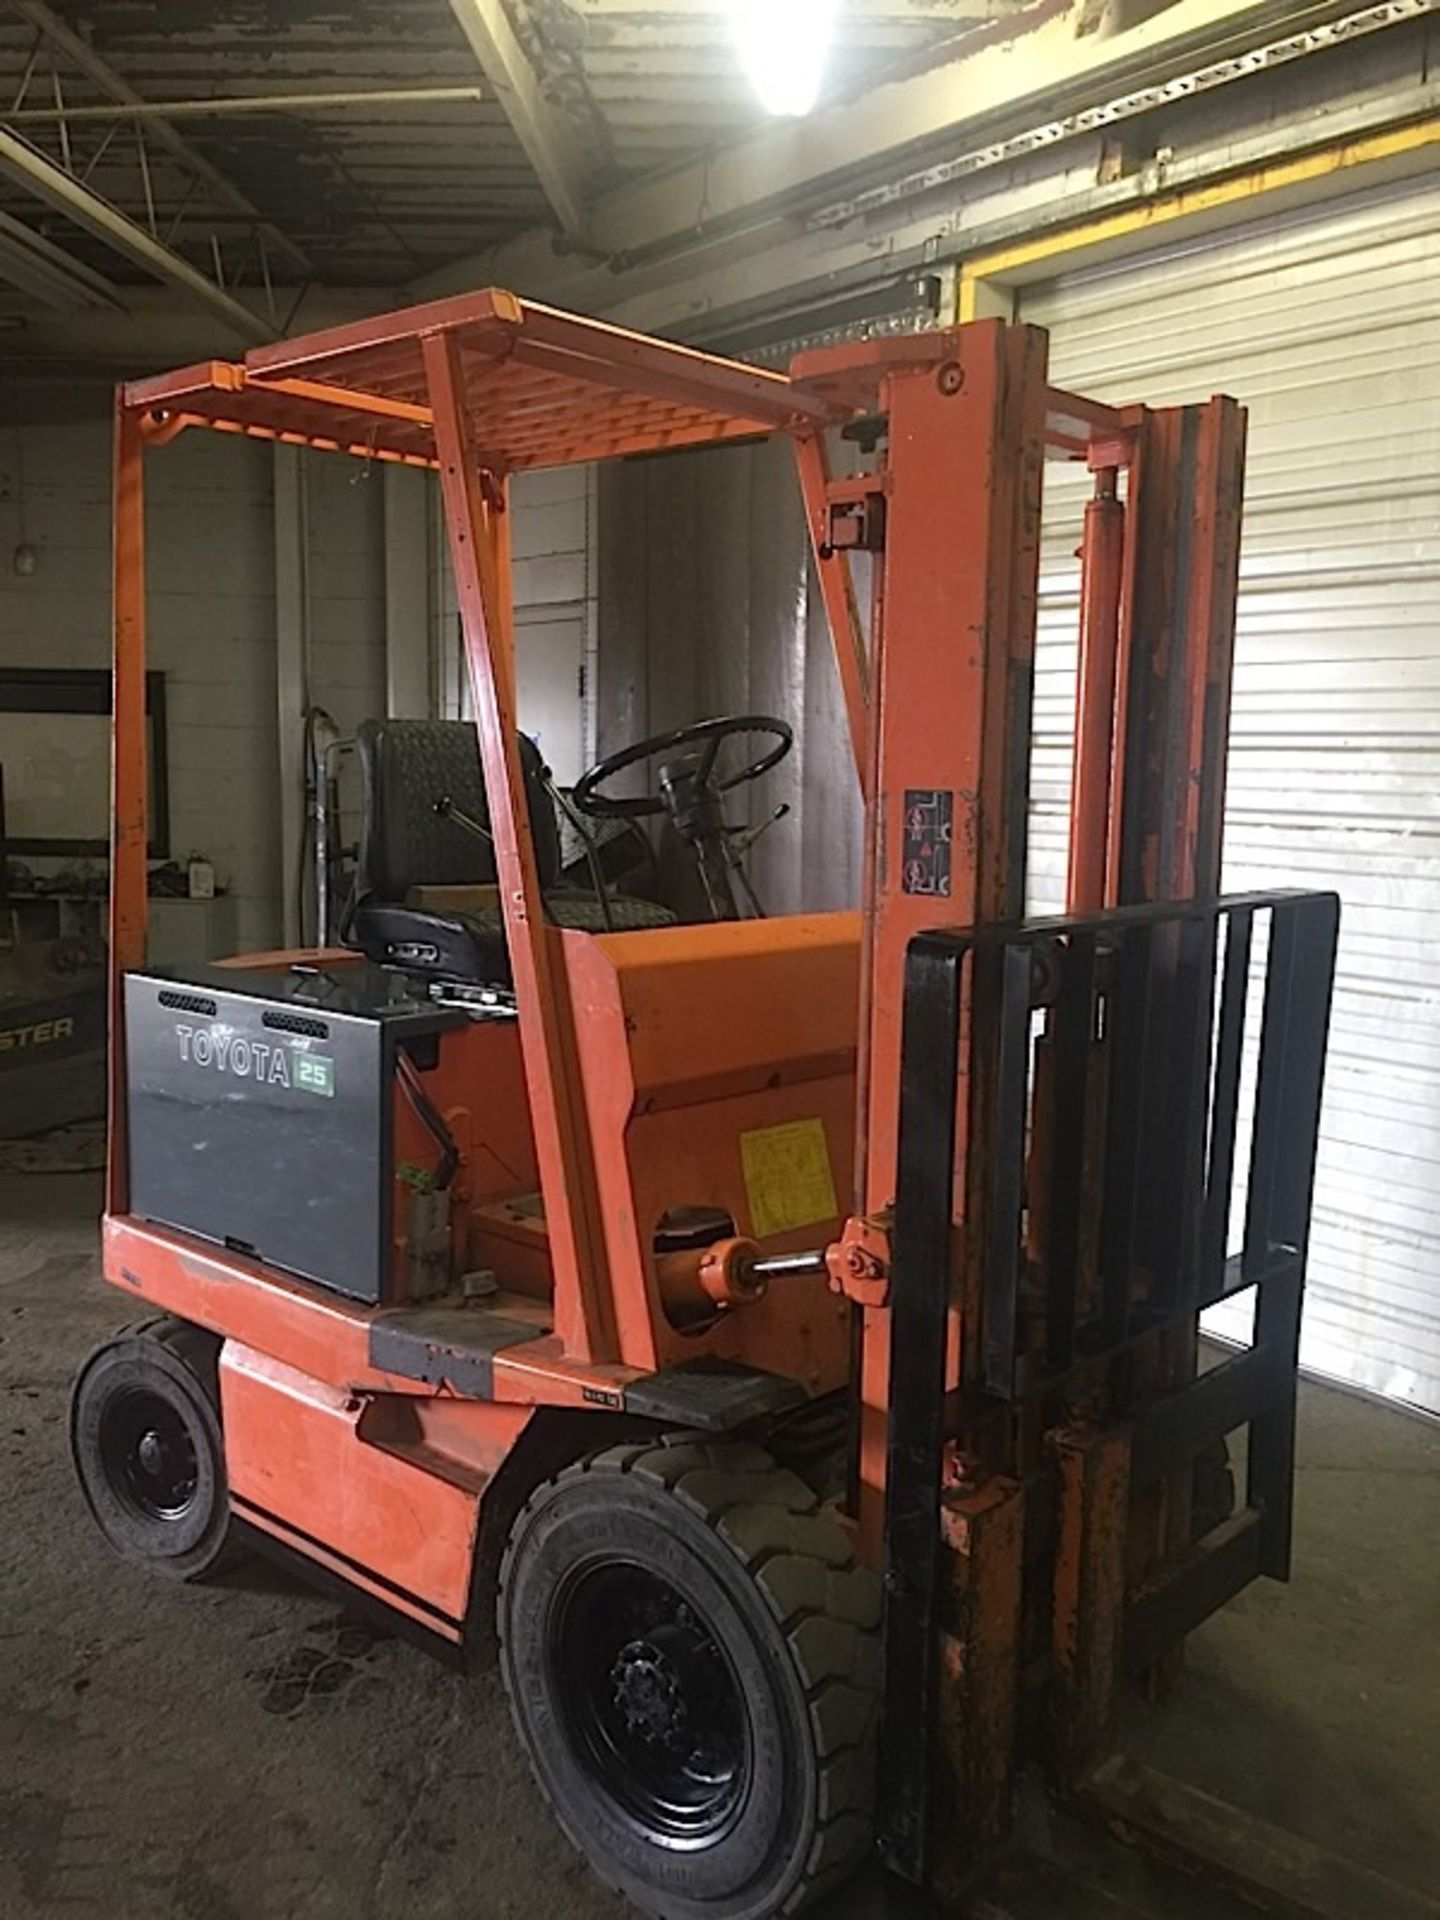 Lot 56 - TOYOTA OUTDOOR (FBA25) 5,000 LBS ELECTRIC 48 VOLT FORKLIFT W/CHARGER